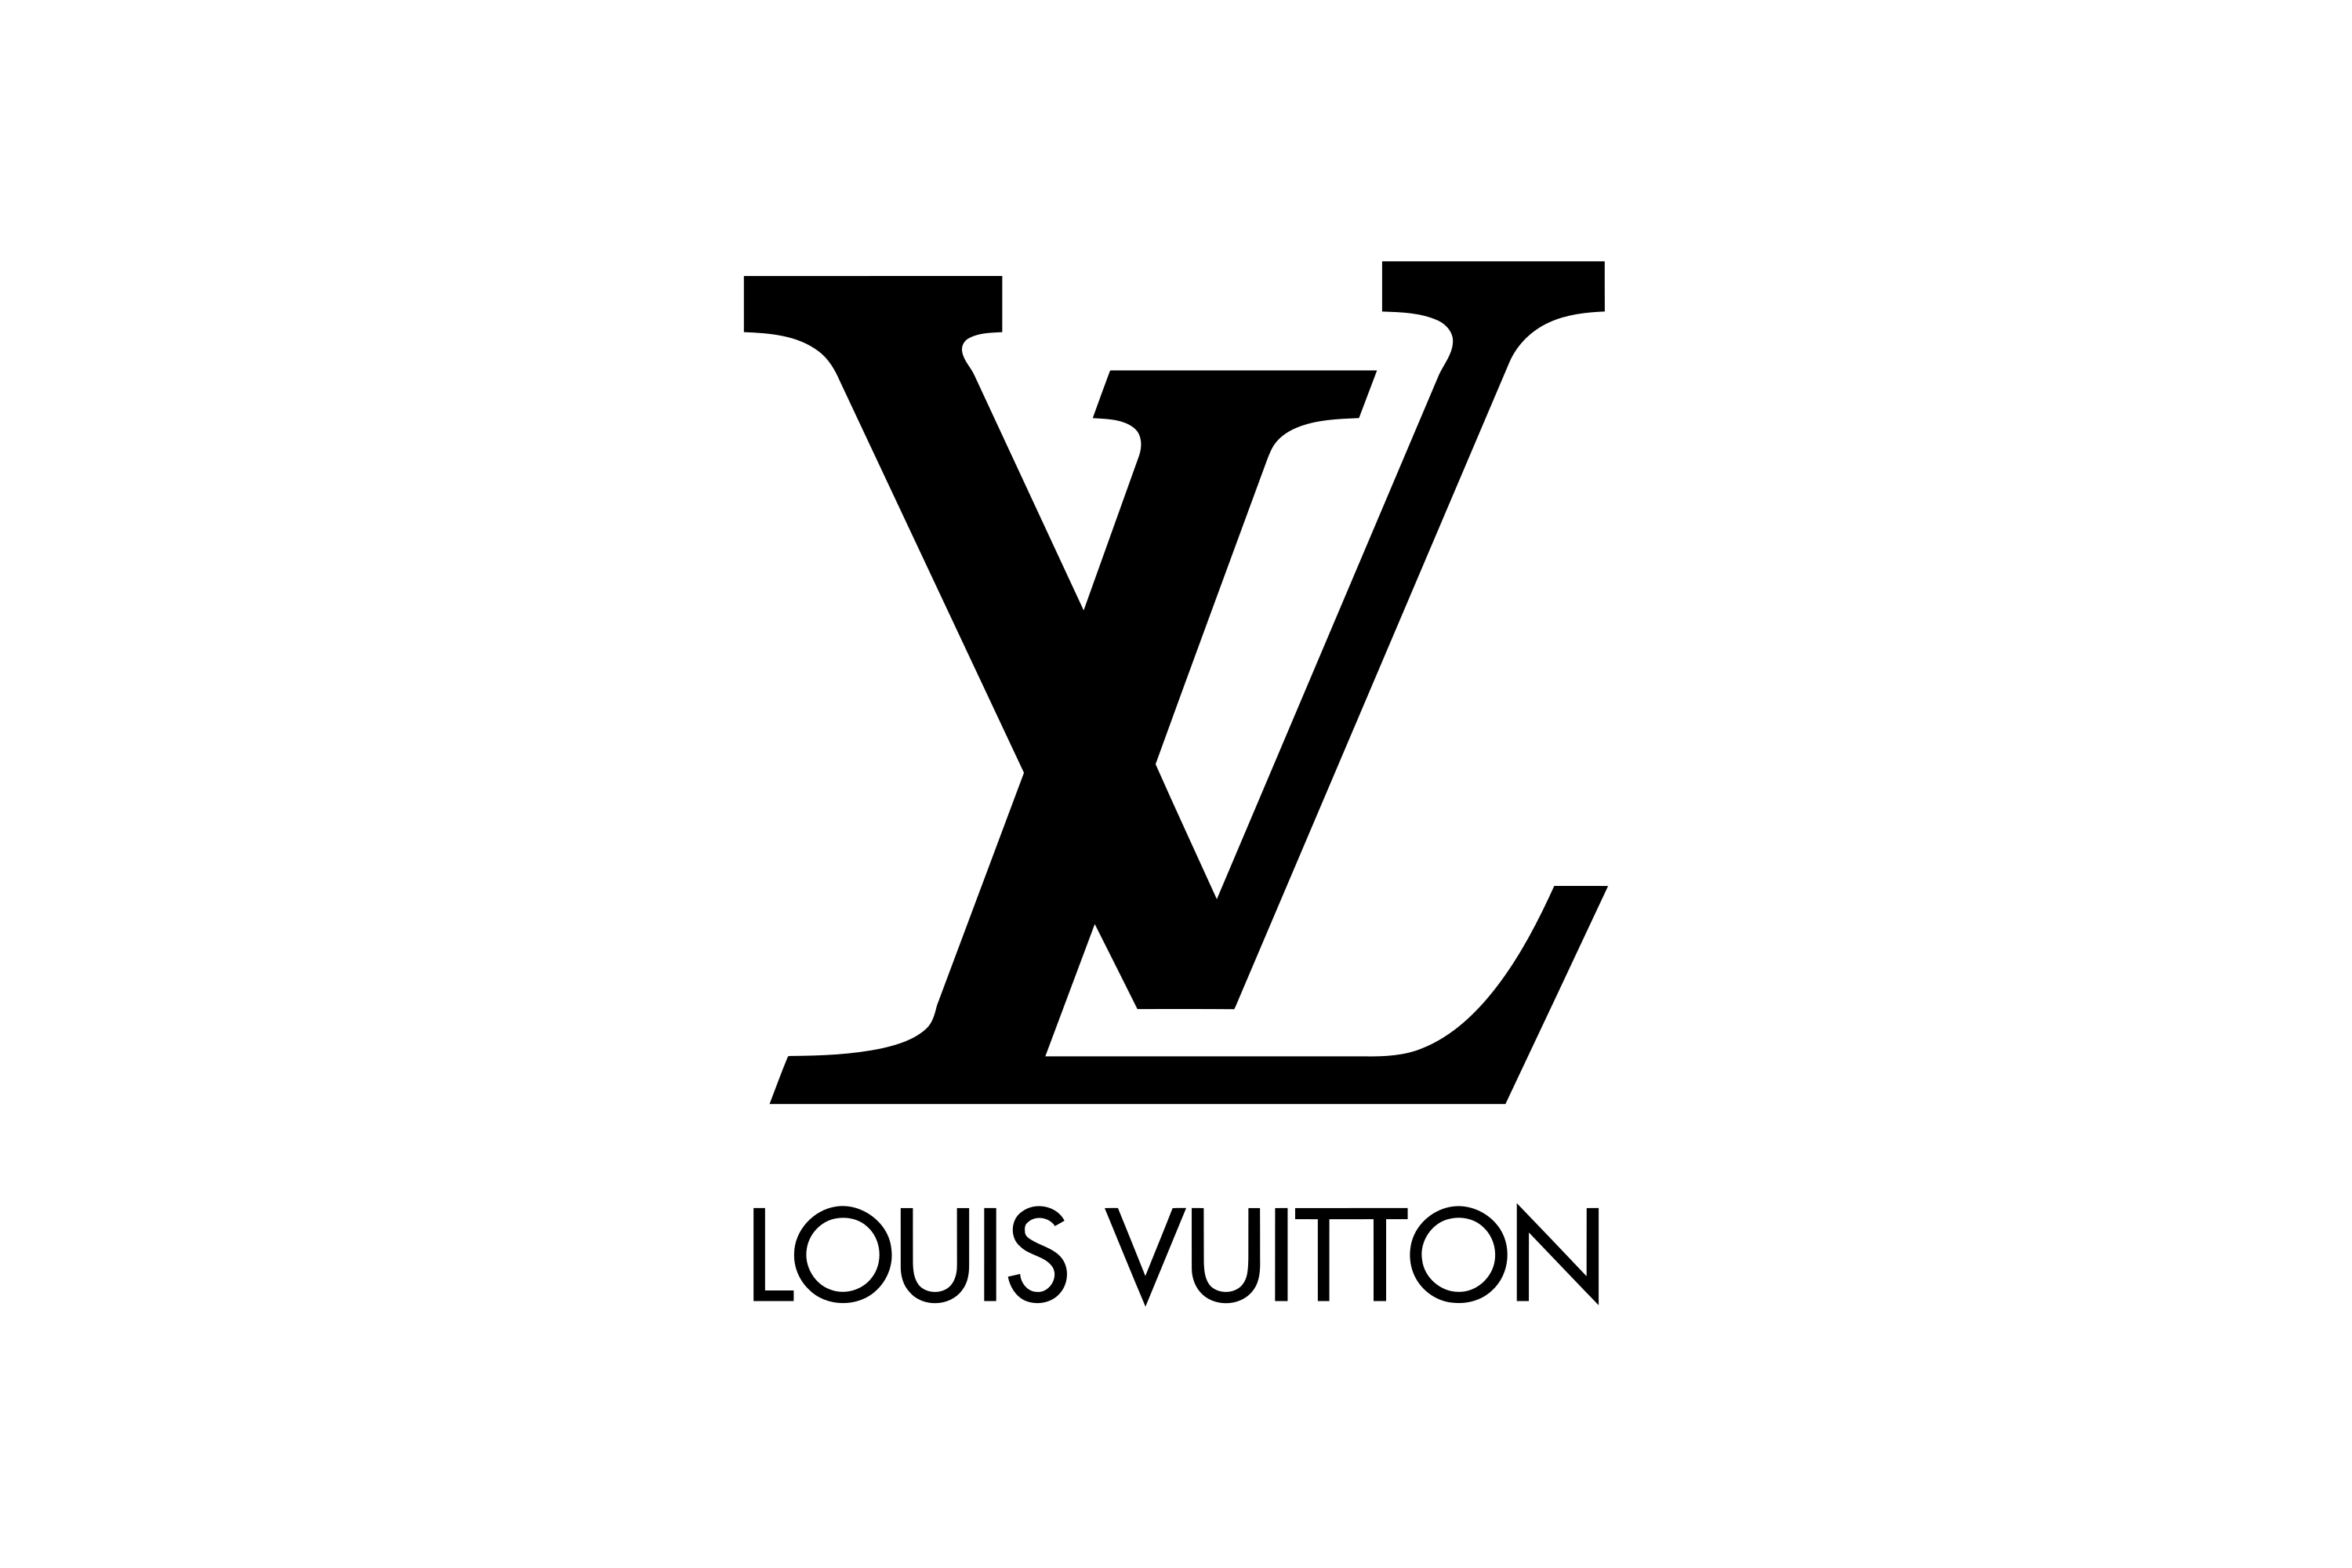 Download Louis Vuitton Lv Logo In Svg Vector Or Png File Format Logo Wine